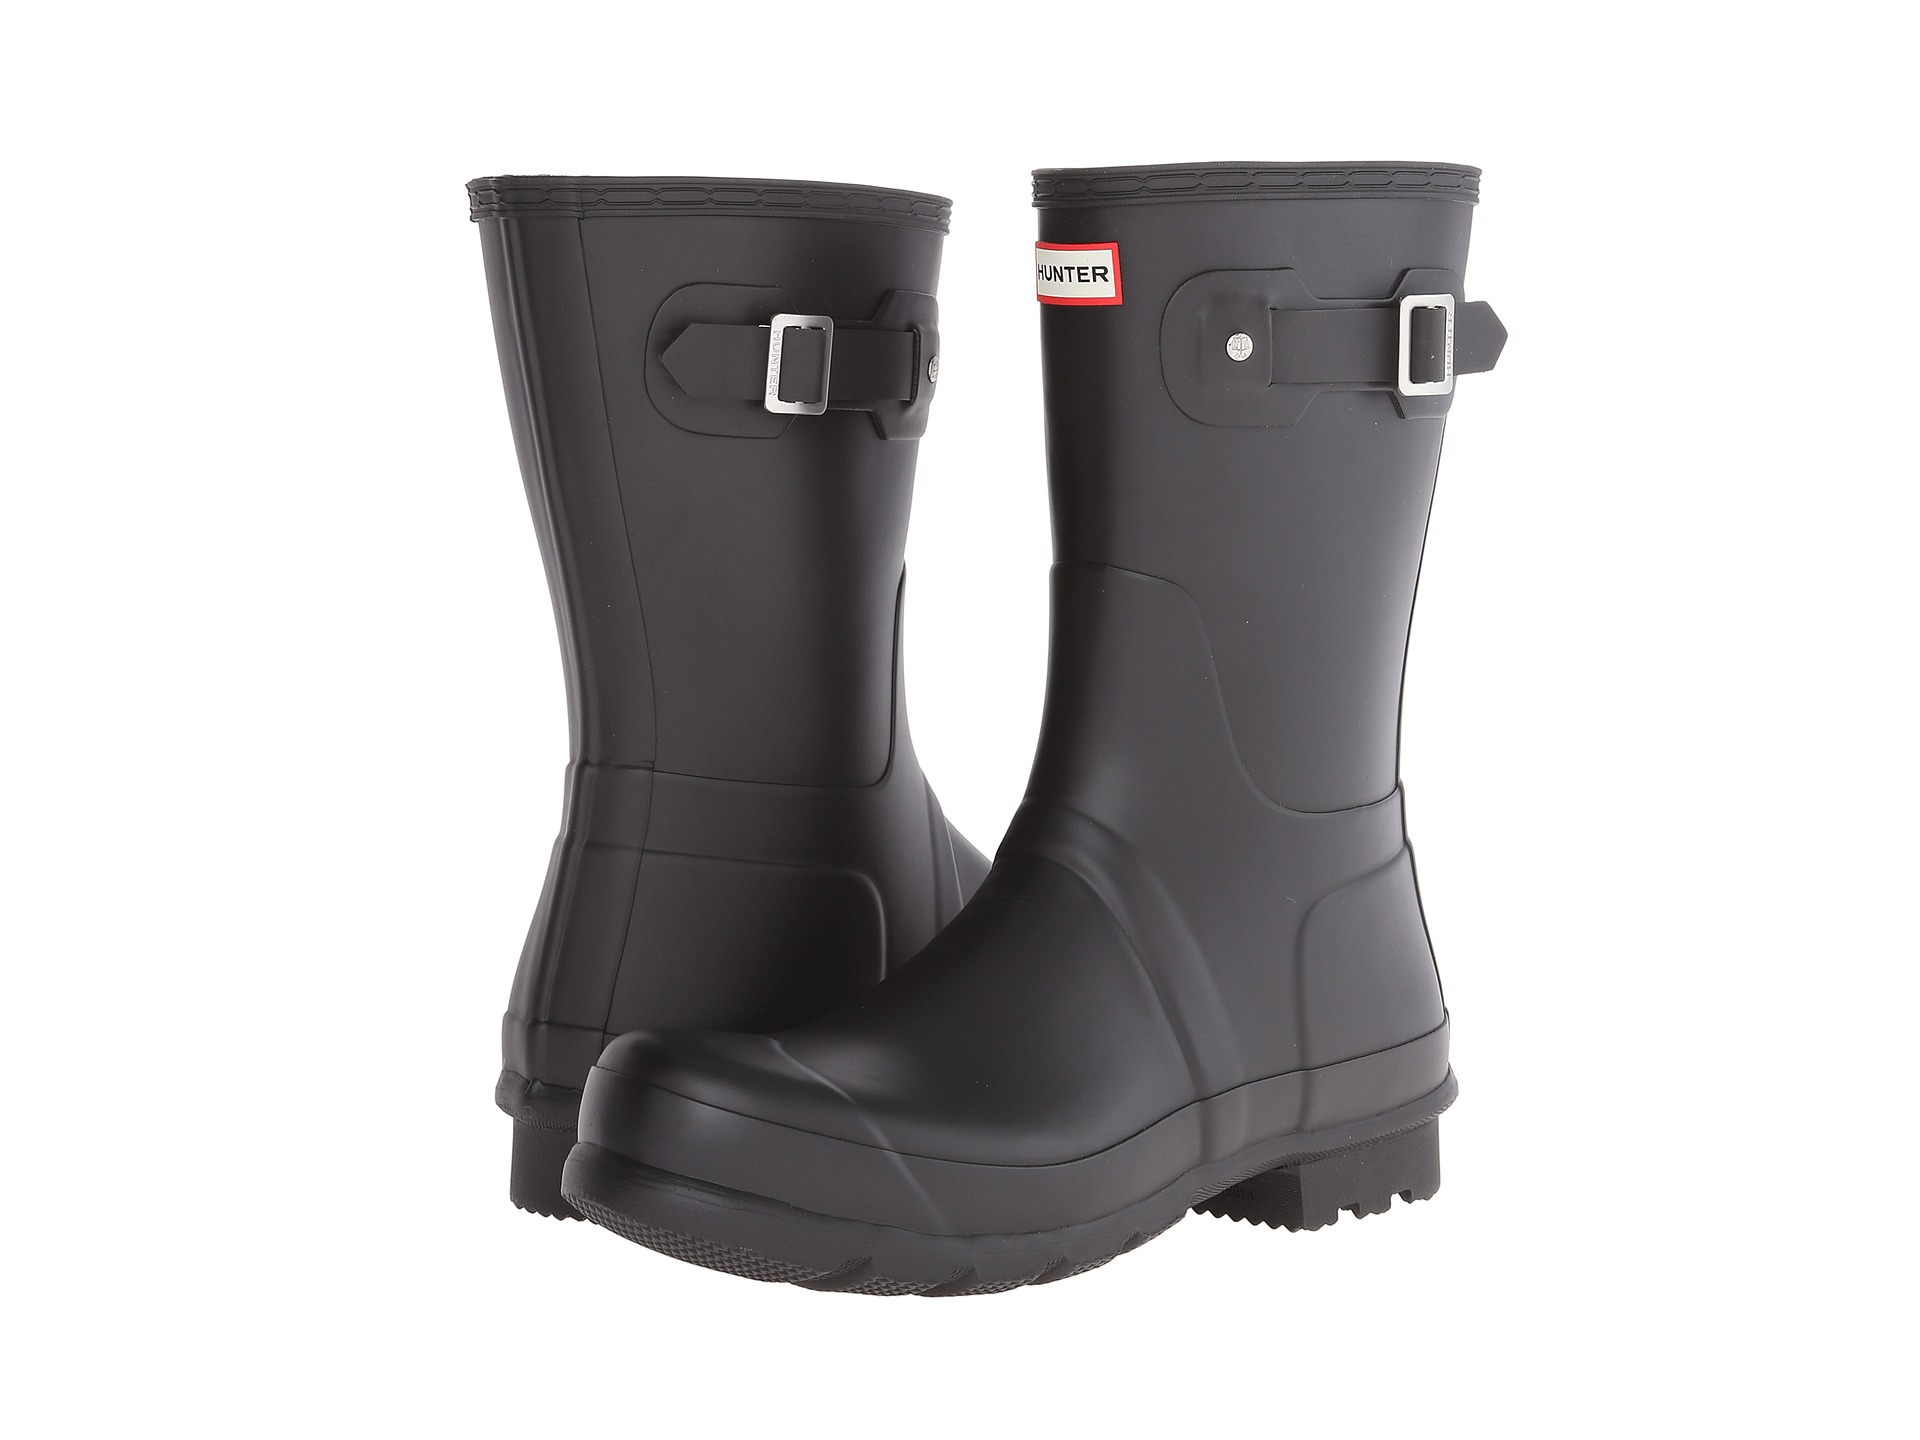 Hunter Boots Boots Shipped Free at Zappos